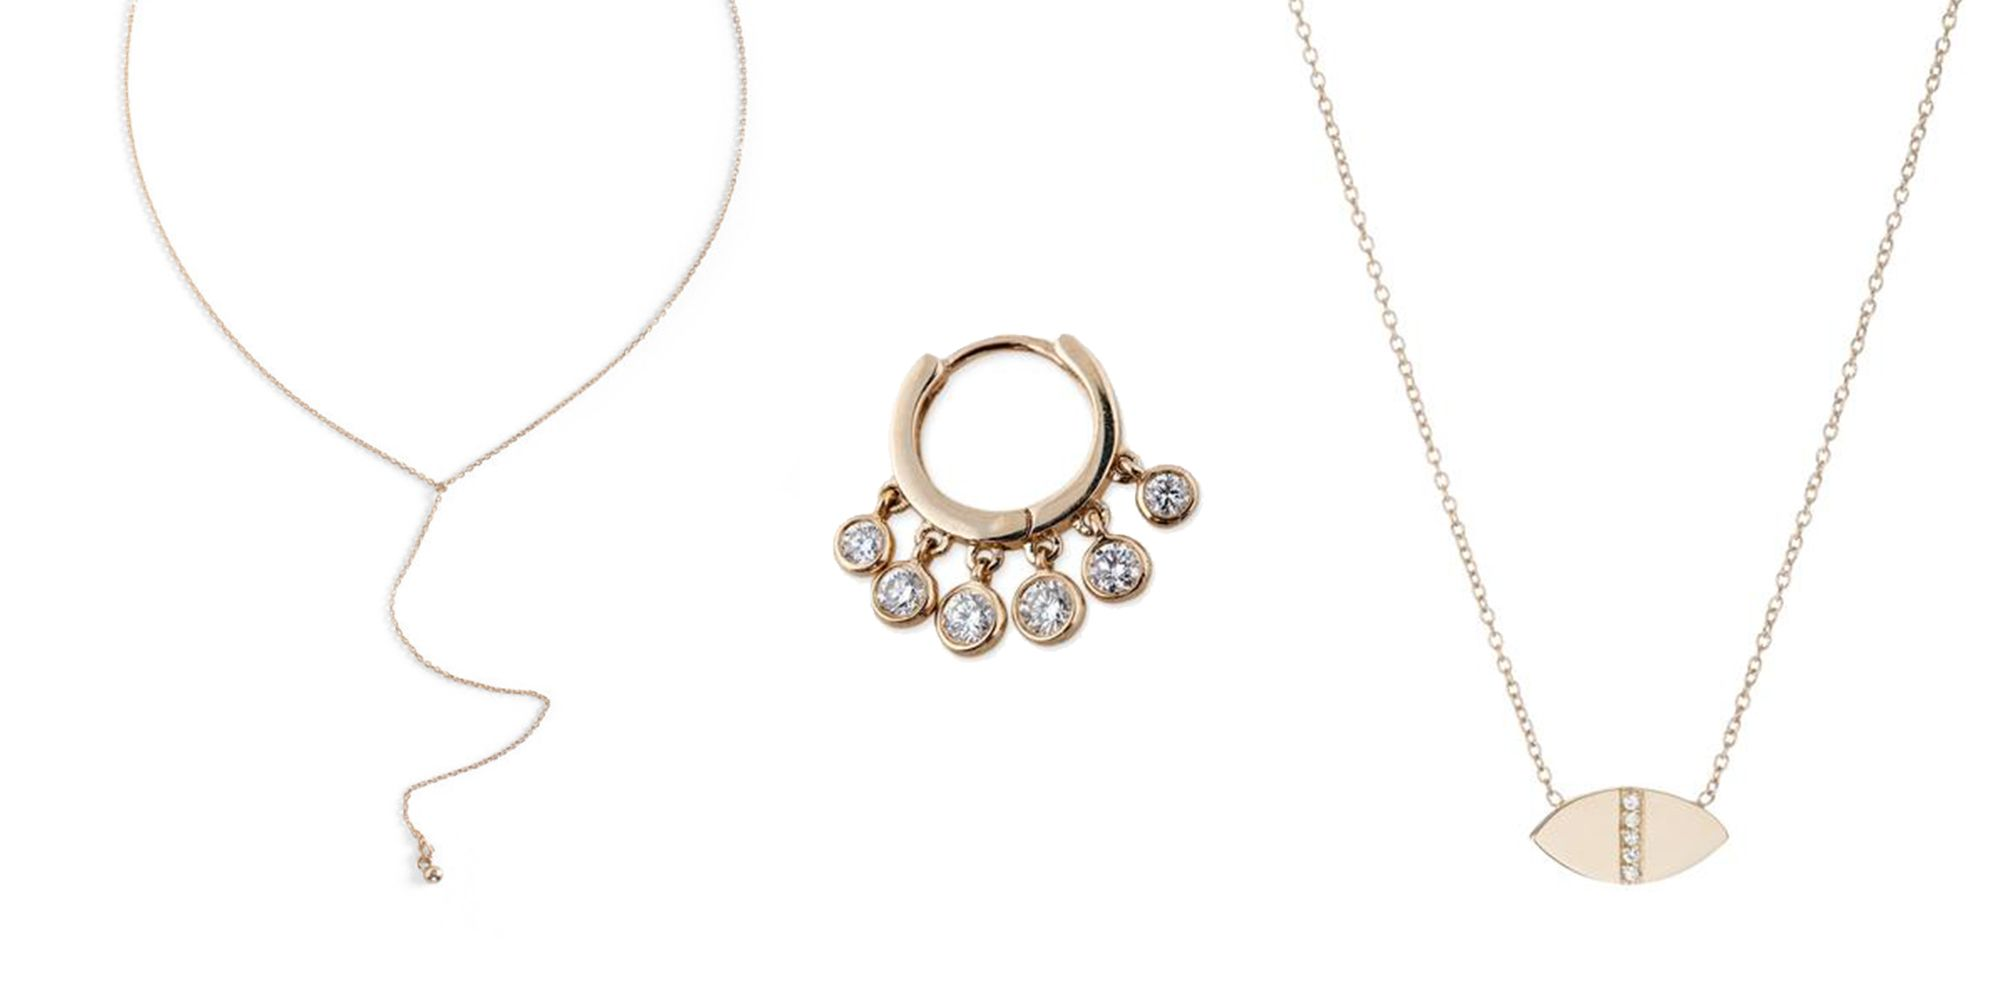 Power Pieces: Statement Jewellery That Will Put You Head and Shoulders Above the Rest at Work